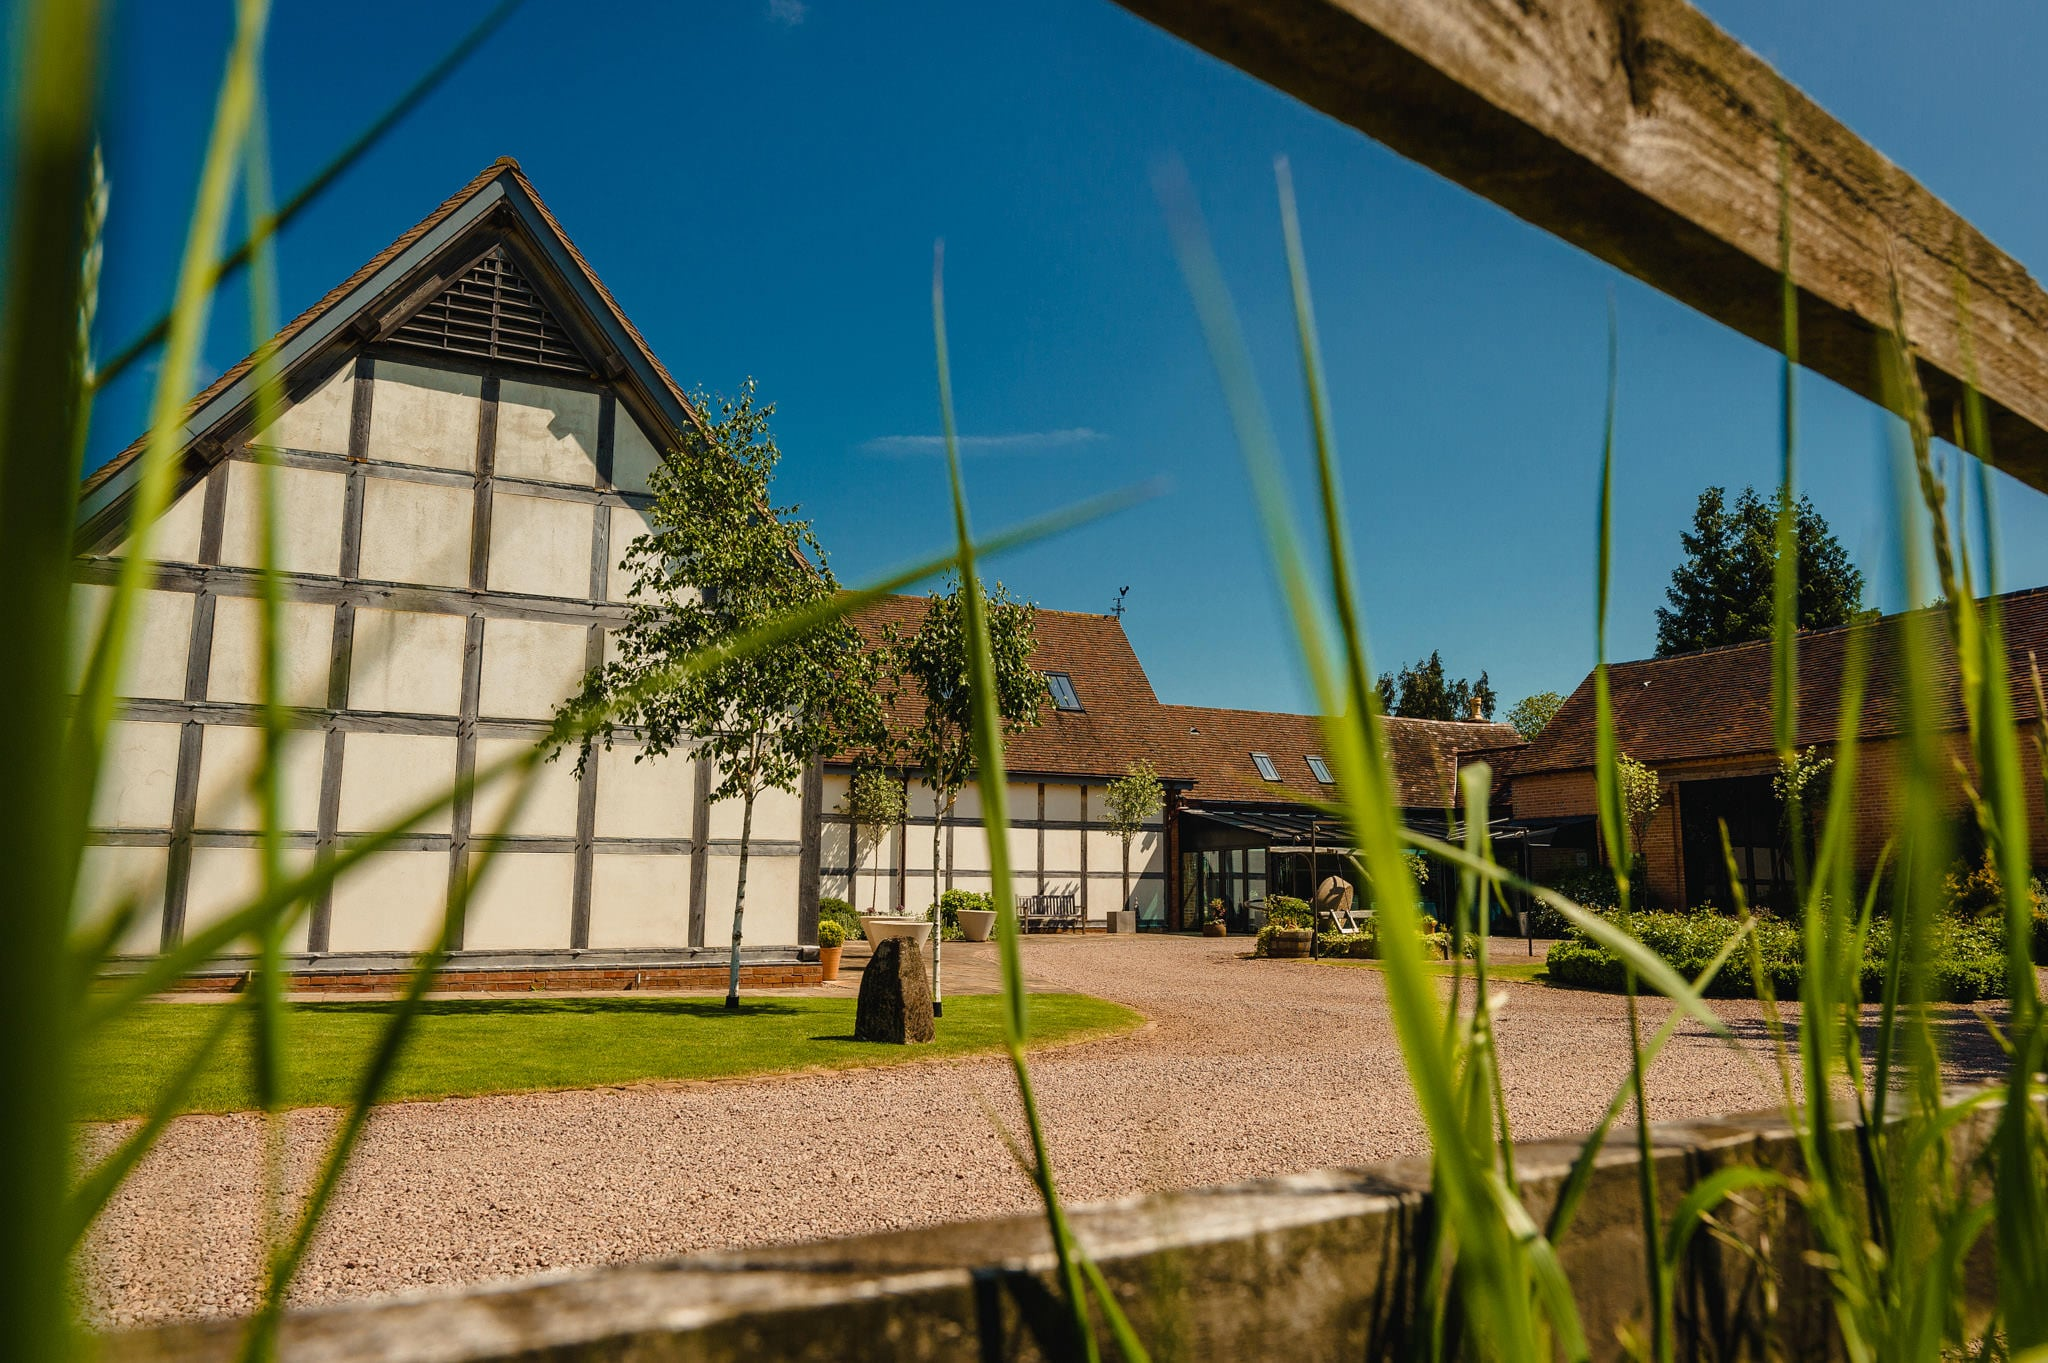 Wedding at Redhouse Barn in Stoke Prior, Worcestershire 1